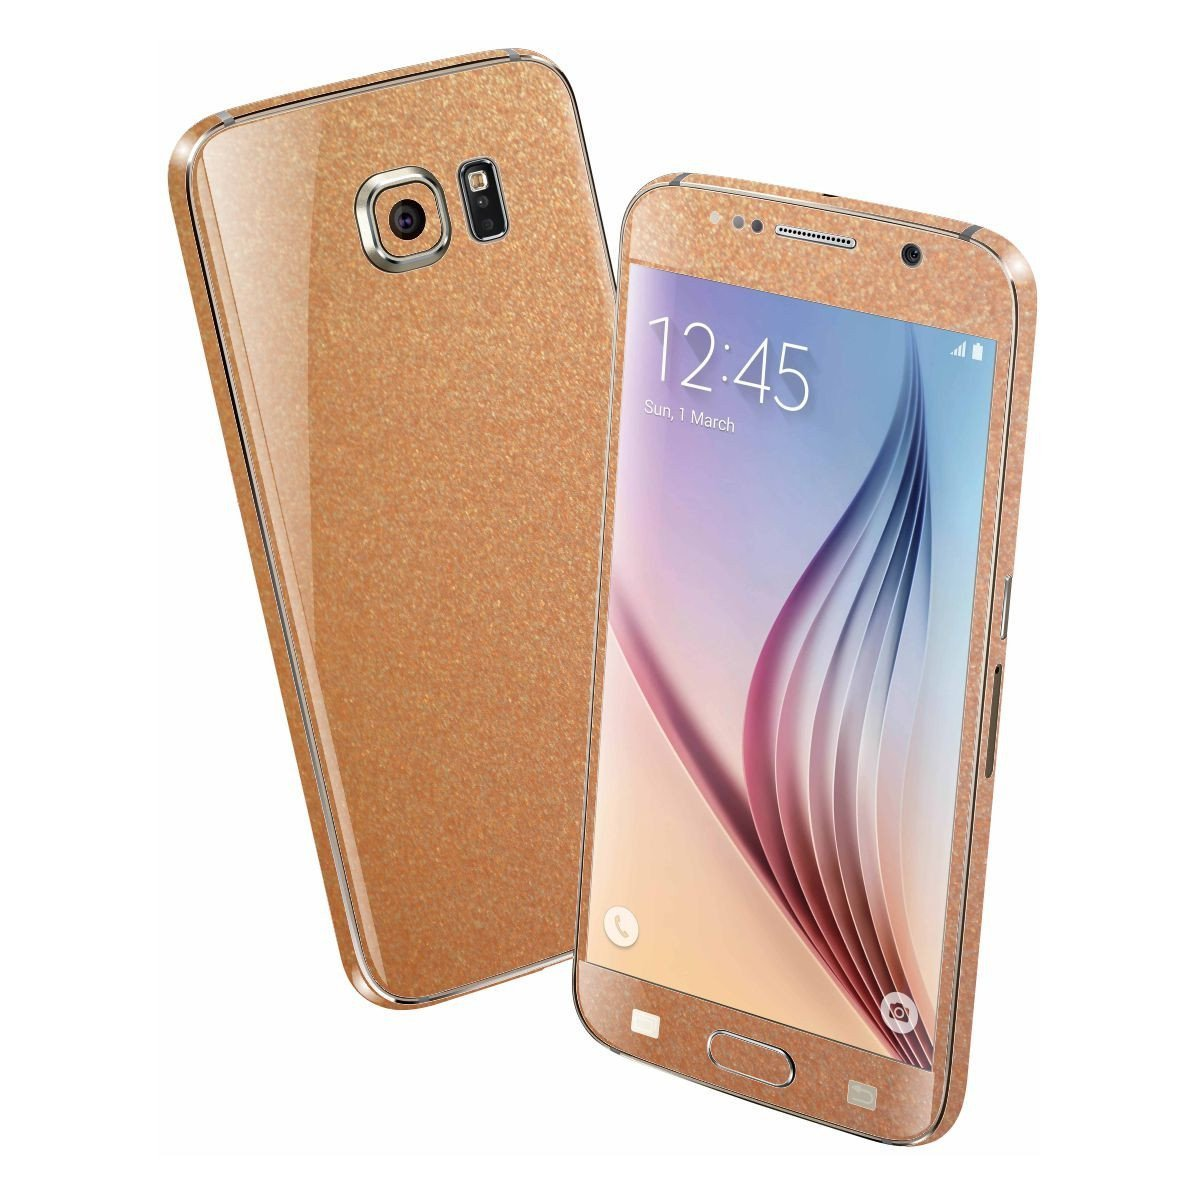 Samsung Galaxy S6 3M Copper Matt Matte Metallic Skin Wrap Sticker Cover Protector Decal by EasySkinz